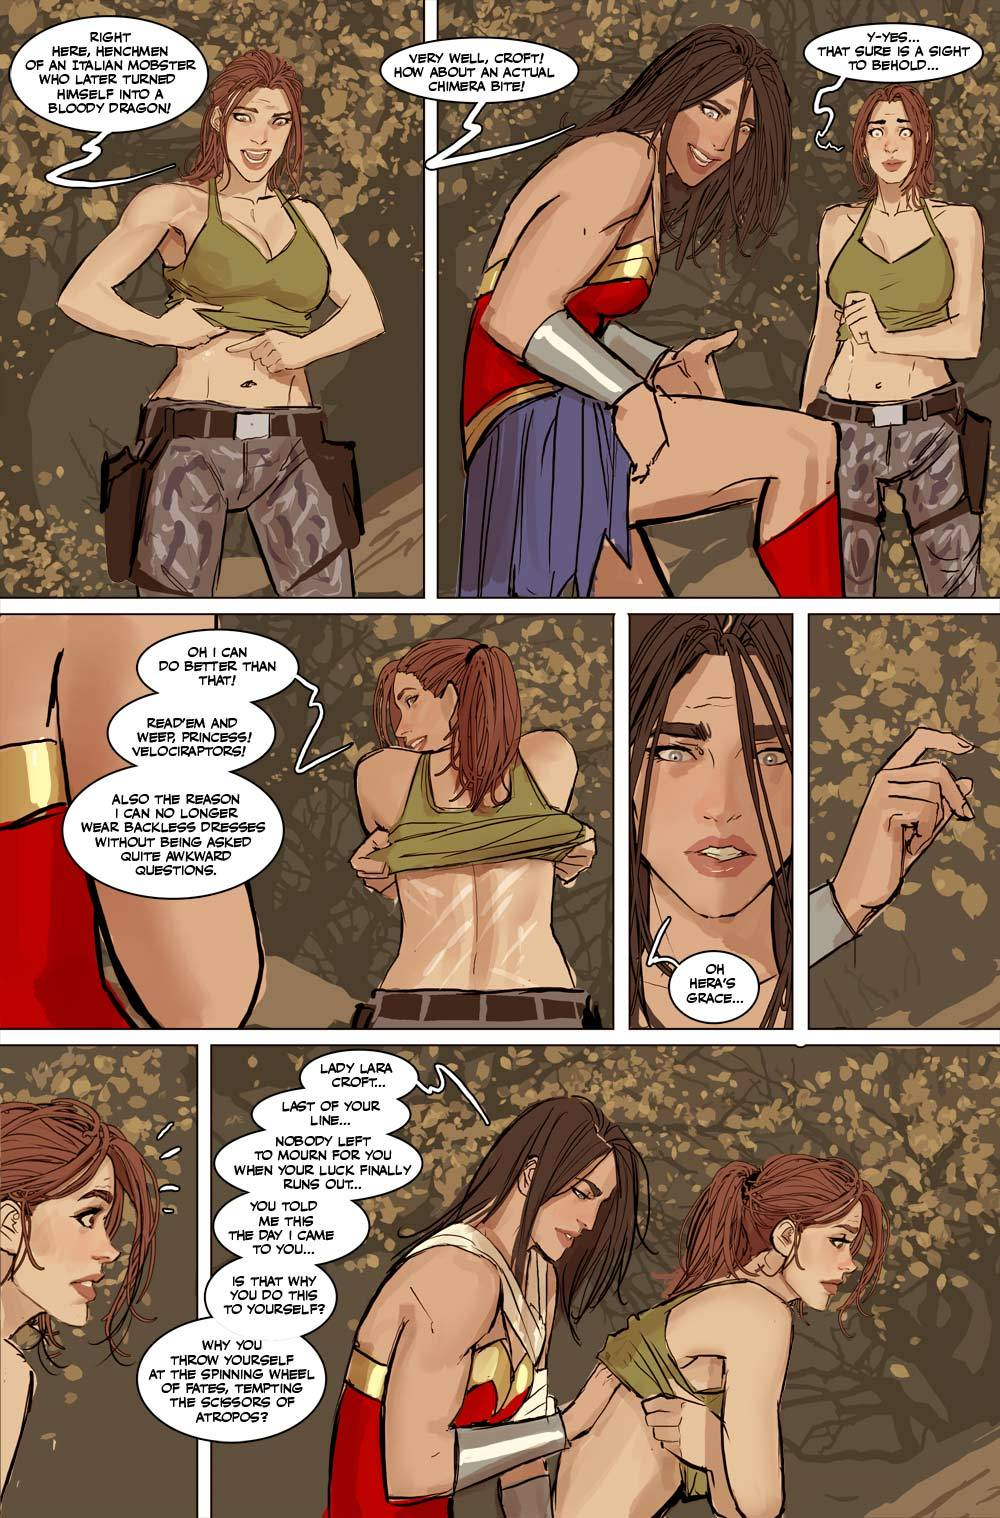 Wonder woman naked lesbien comics